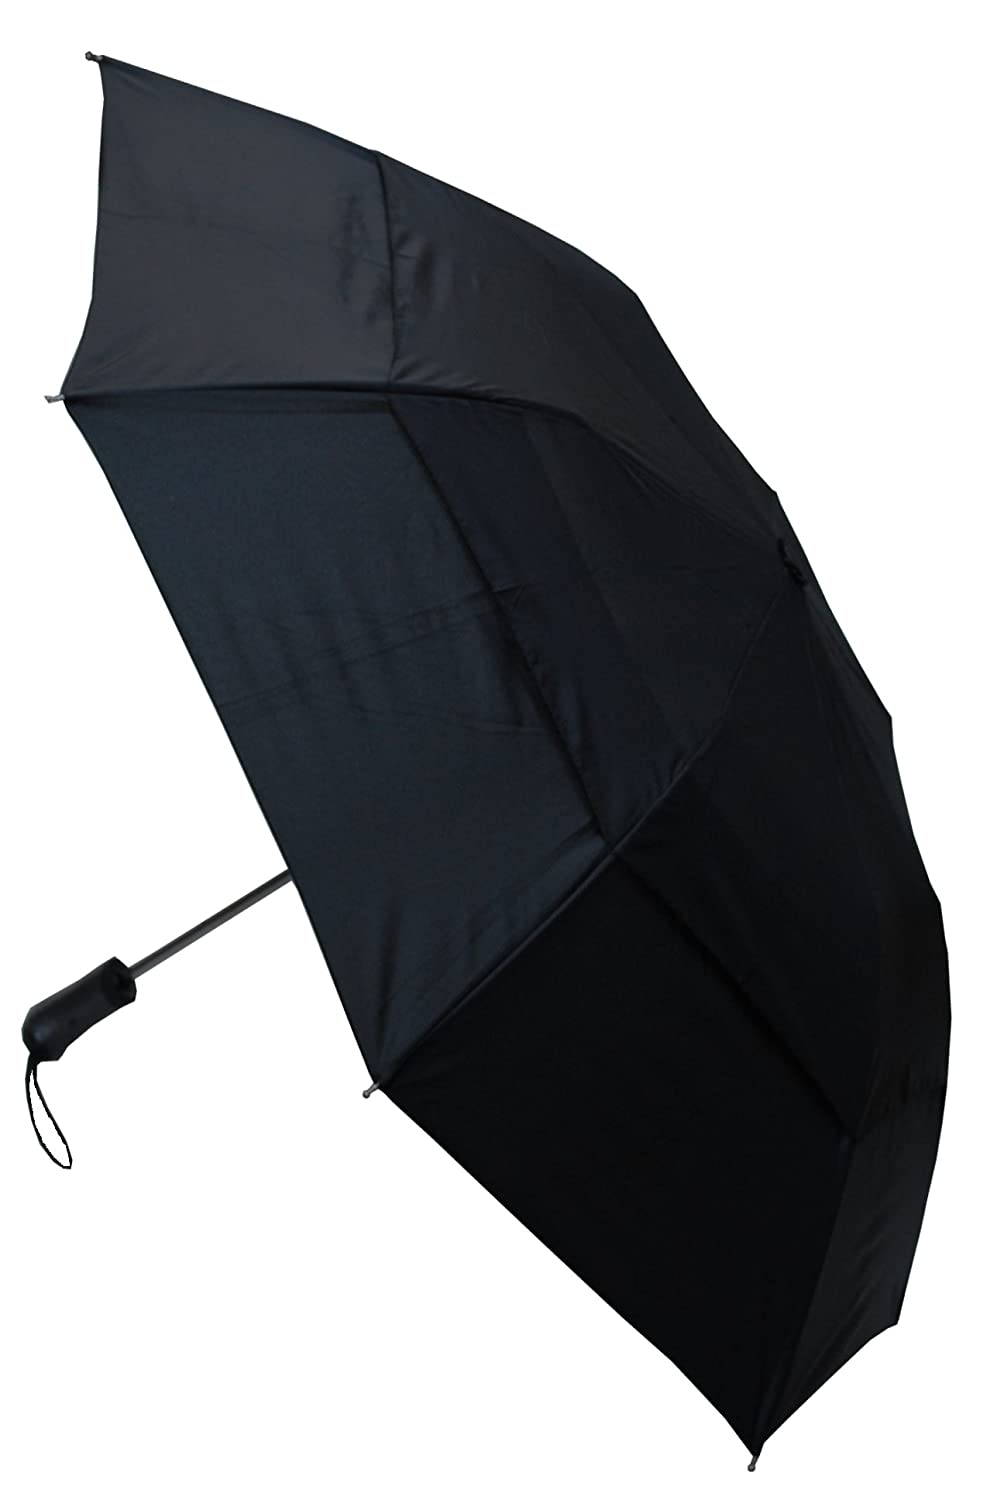 COLLAR AND CUFFS LONDON - RARE 2-Fold EXTRA STRONG Windproof StormProtector Pro Folding Umbrella - Vented Double Layer Canopy - HIGHLY ENGINEERED TO COMBAT INVERSION DAMAGE - Auto Open - Bi-Fold Black CCLSTORMPUMB10202